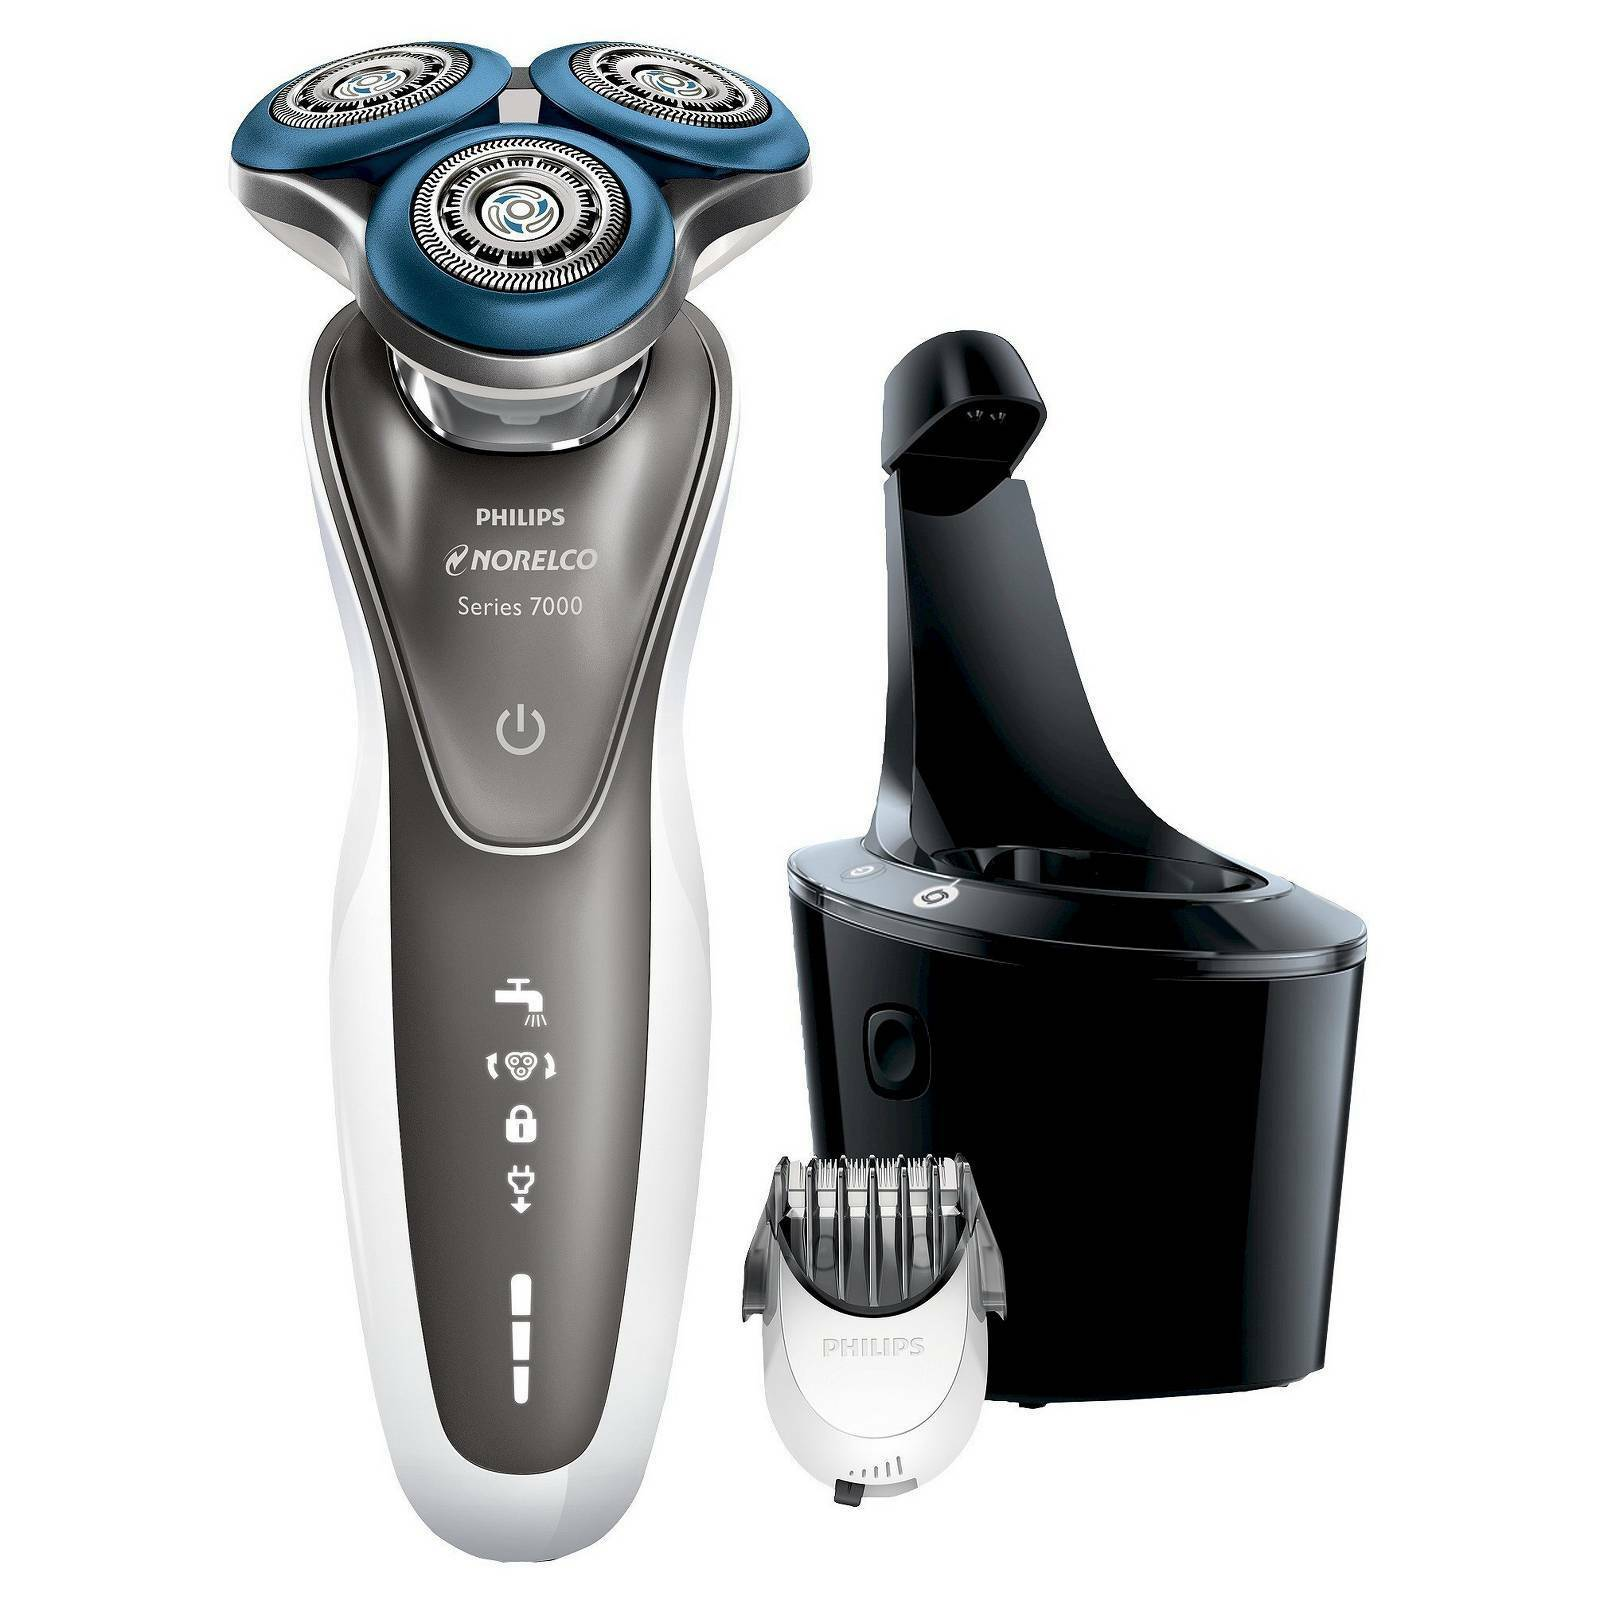 Buy Philips Norelco Shaver 7700 for Sensitive Skin S7720 85standard ... 1dede66b31c